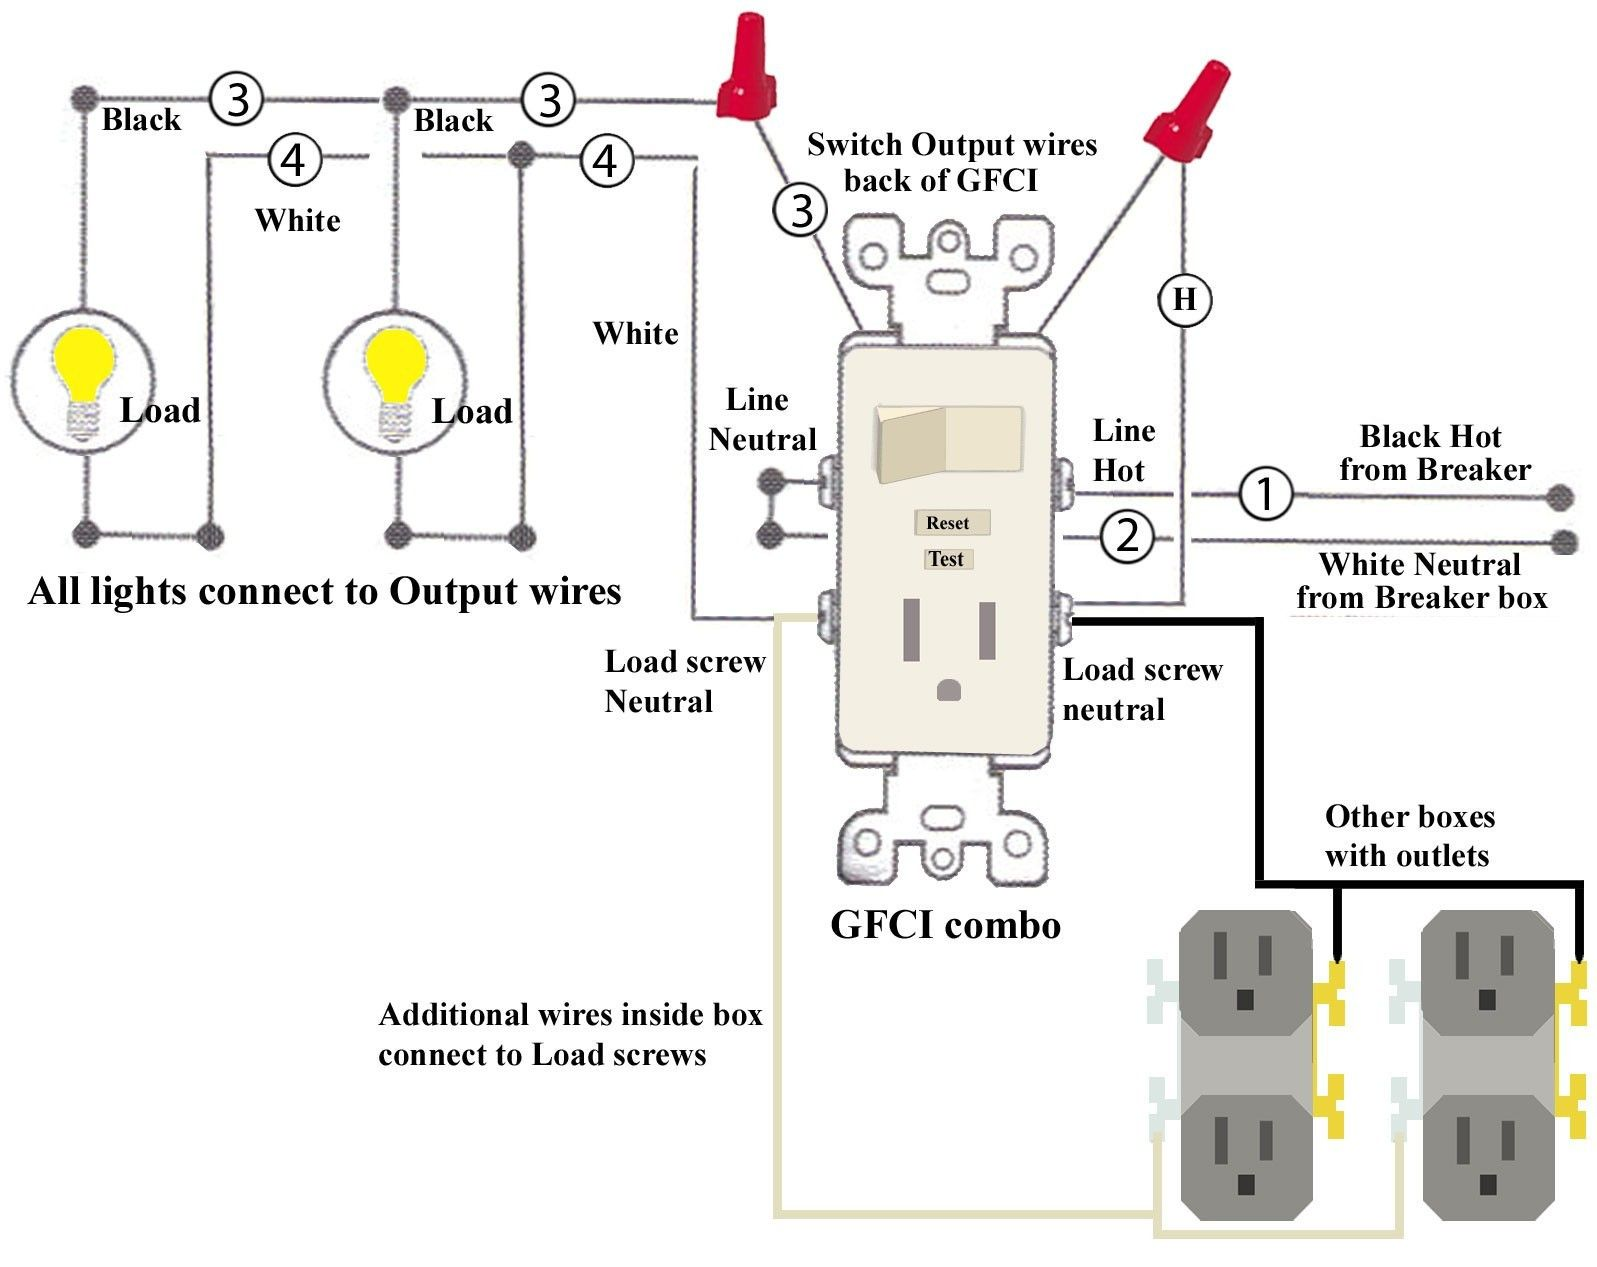 Unique Wiring Diagram For Olympian Generator Diagram Diagramsample Diagramtemplate Wiringdiagram Diagramchart Worksheet Works Outlet Wiring Diagram Gfci